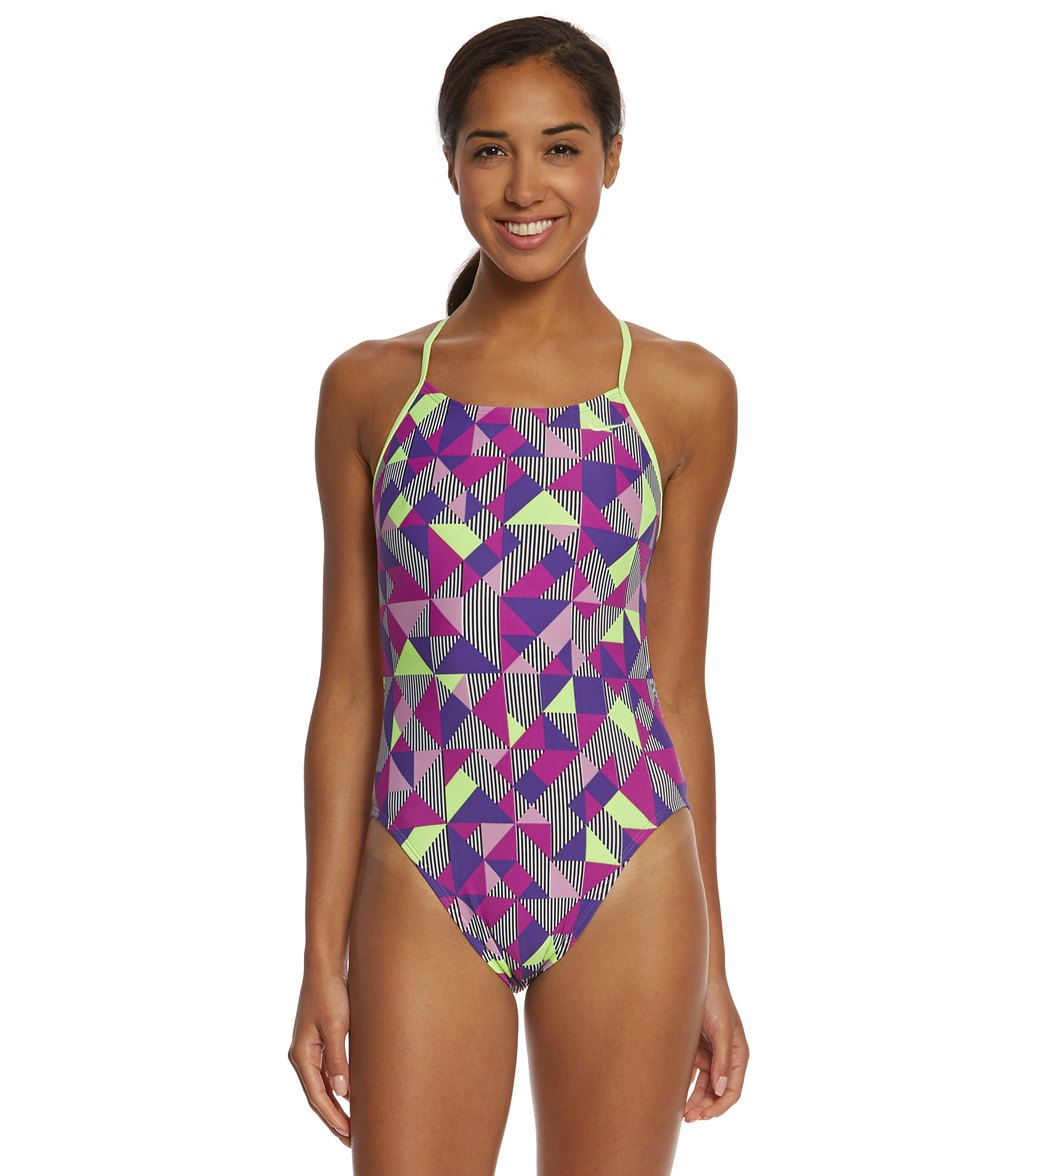 df9e56fafaf Nike SwimOutlet Exclusive Women s Optic Pop Cut-Out Tank One ...